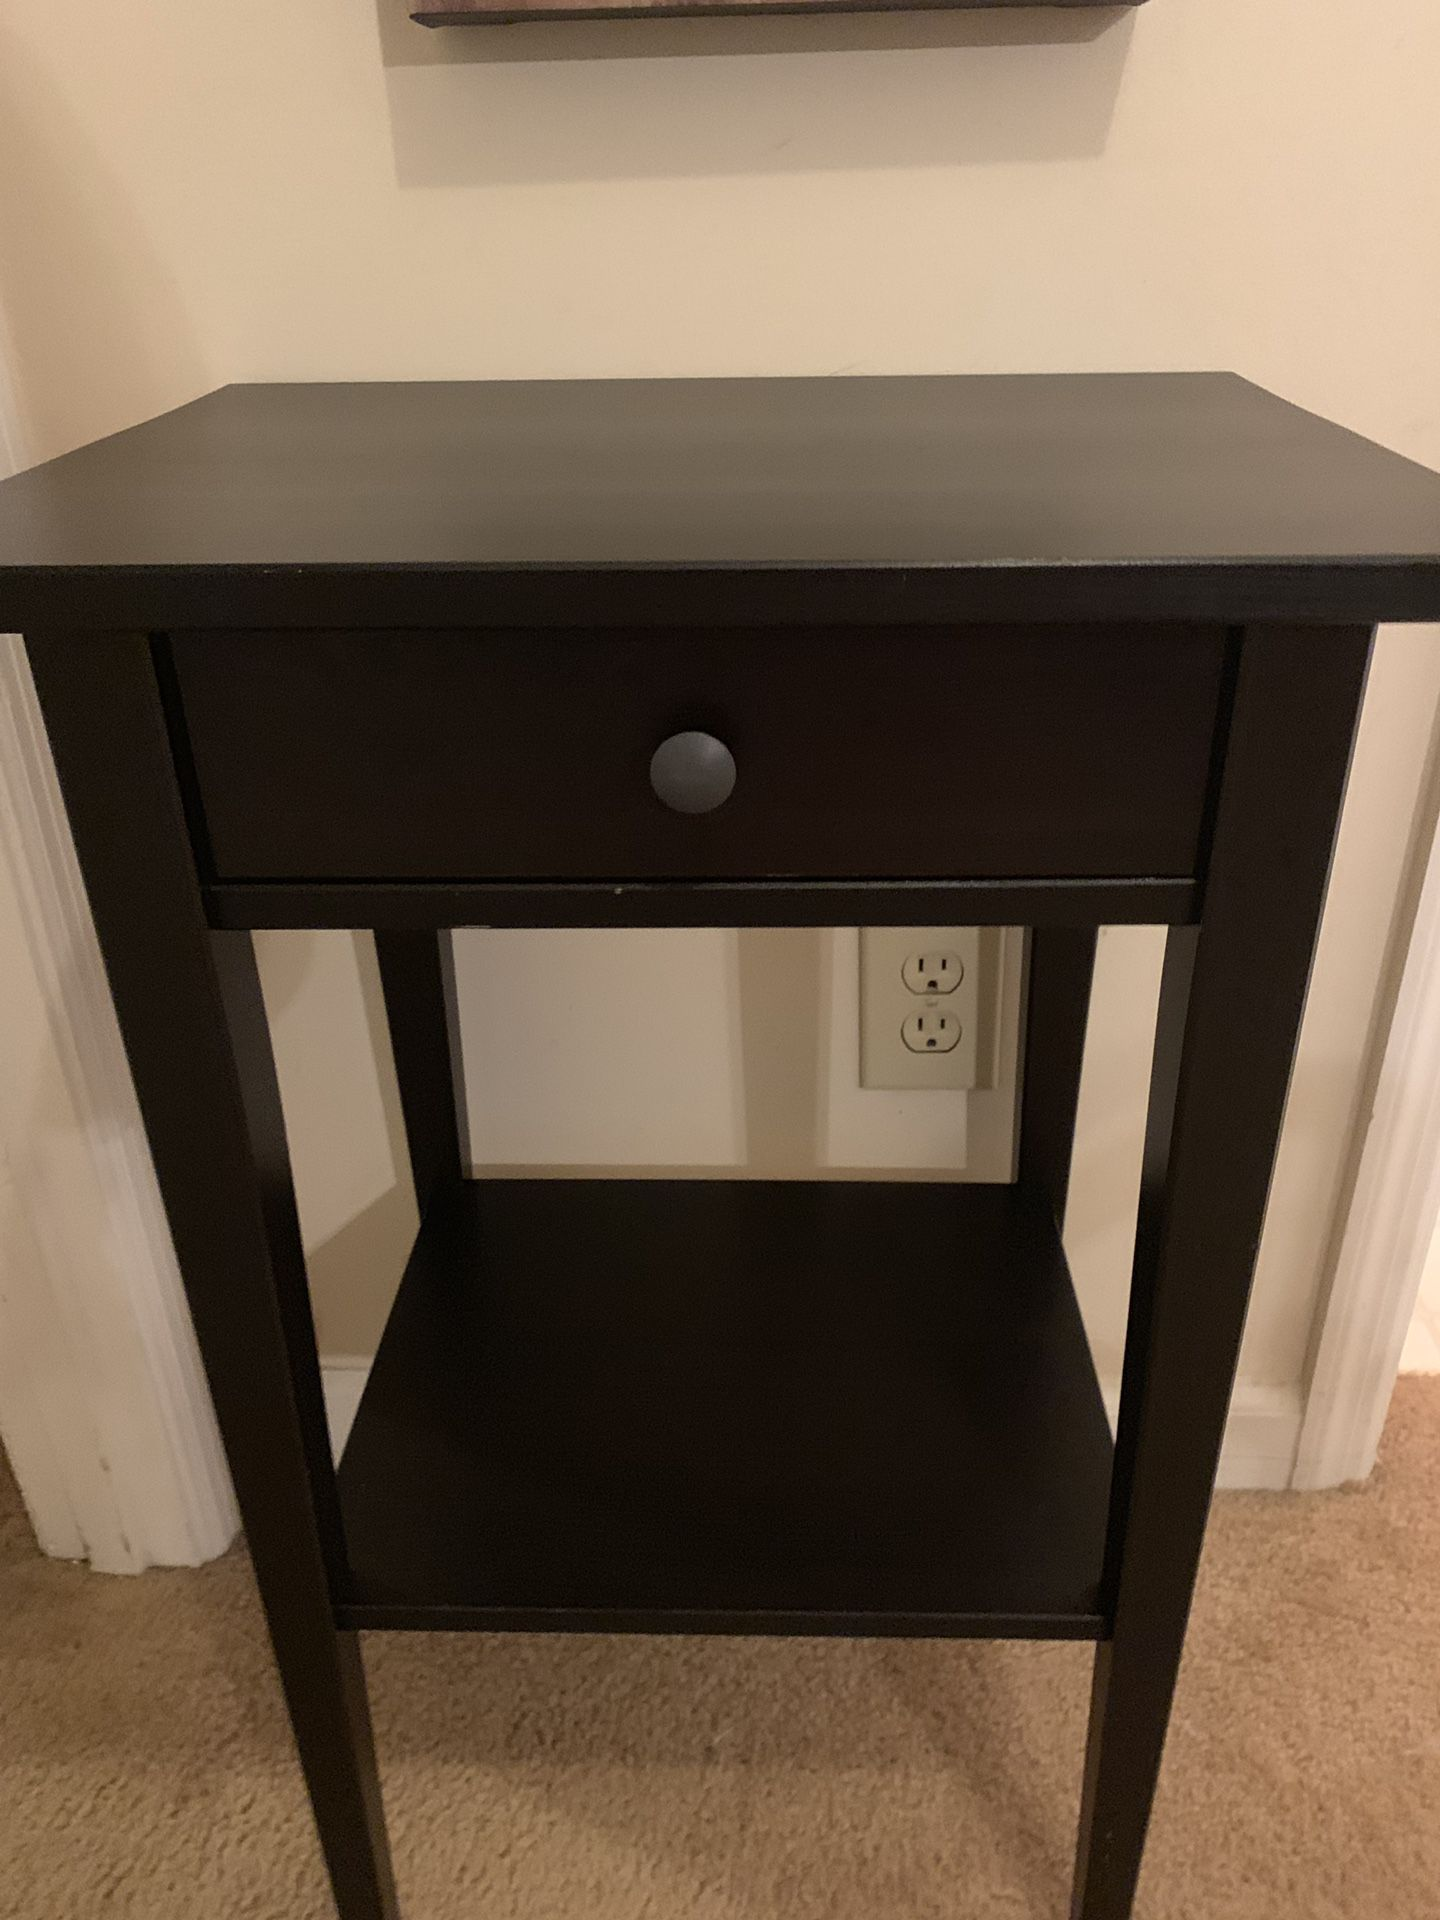 Two dark brown black IKEA nightstands/ side tables with drawers